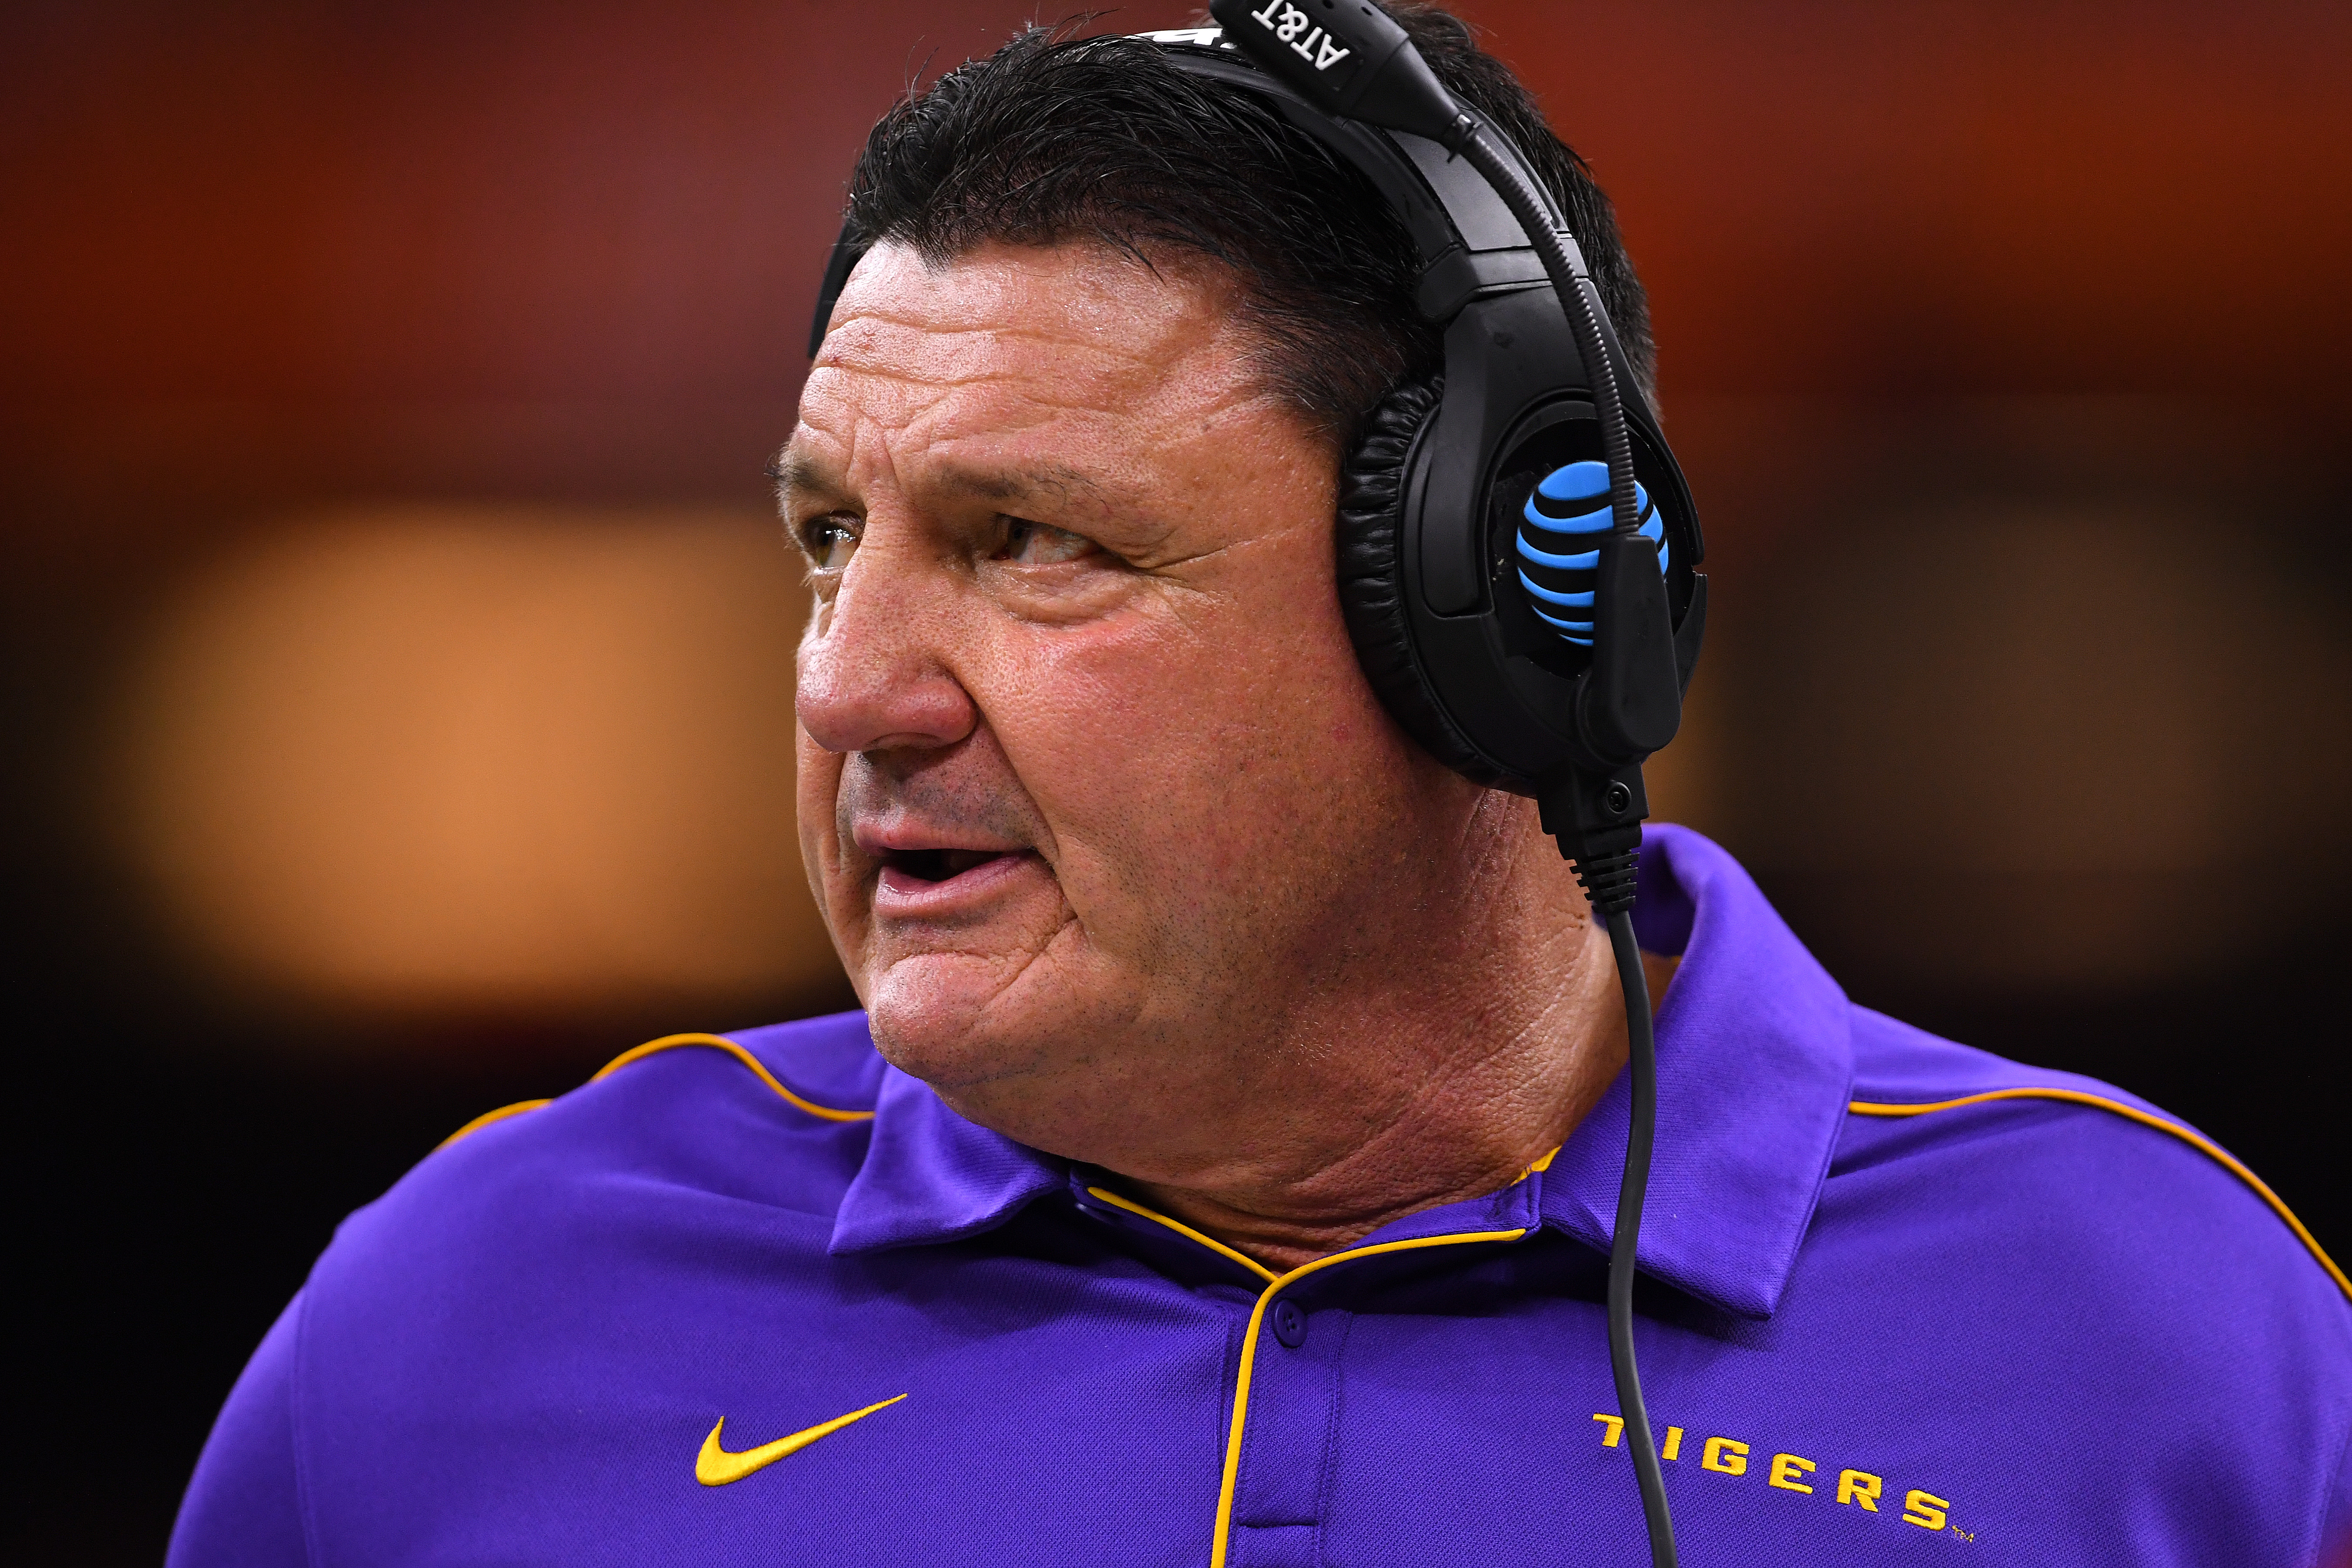 NEW ORLEANS, LA - JANUARY 13: Head Coach Ed Orgeron of the LSU Tigers coaches from the sidelines against the Clemson Tigers during the College Football Playoff National Championship held at the Mercedes-Benz Superdome on January 13, 2020 in New Orleans, Louisiana. (Photo by Jamie Schwaberow/Getty Images)